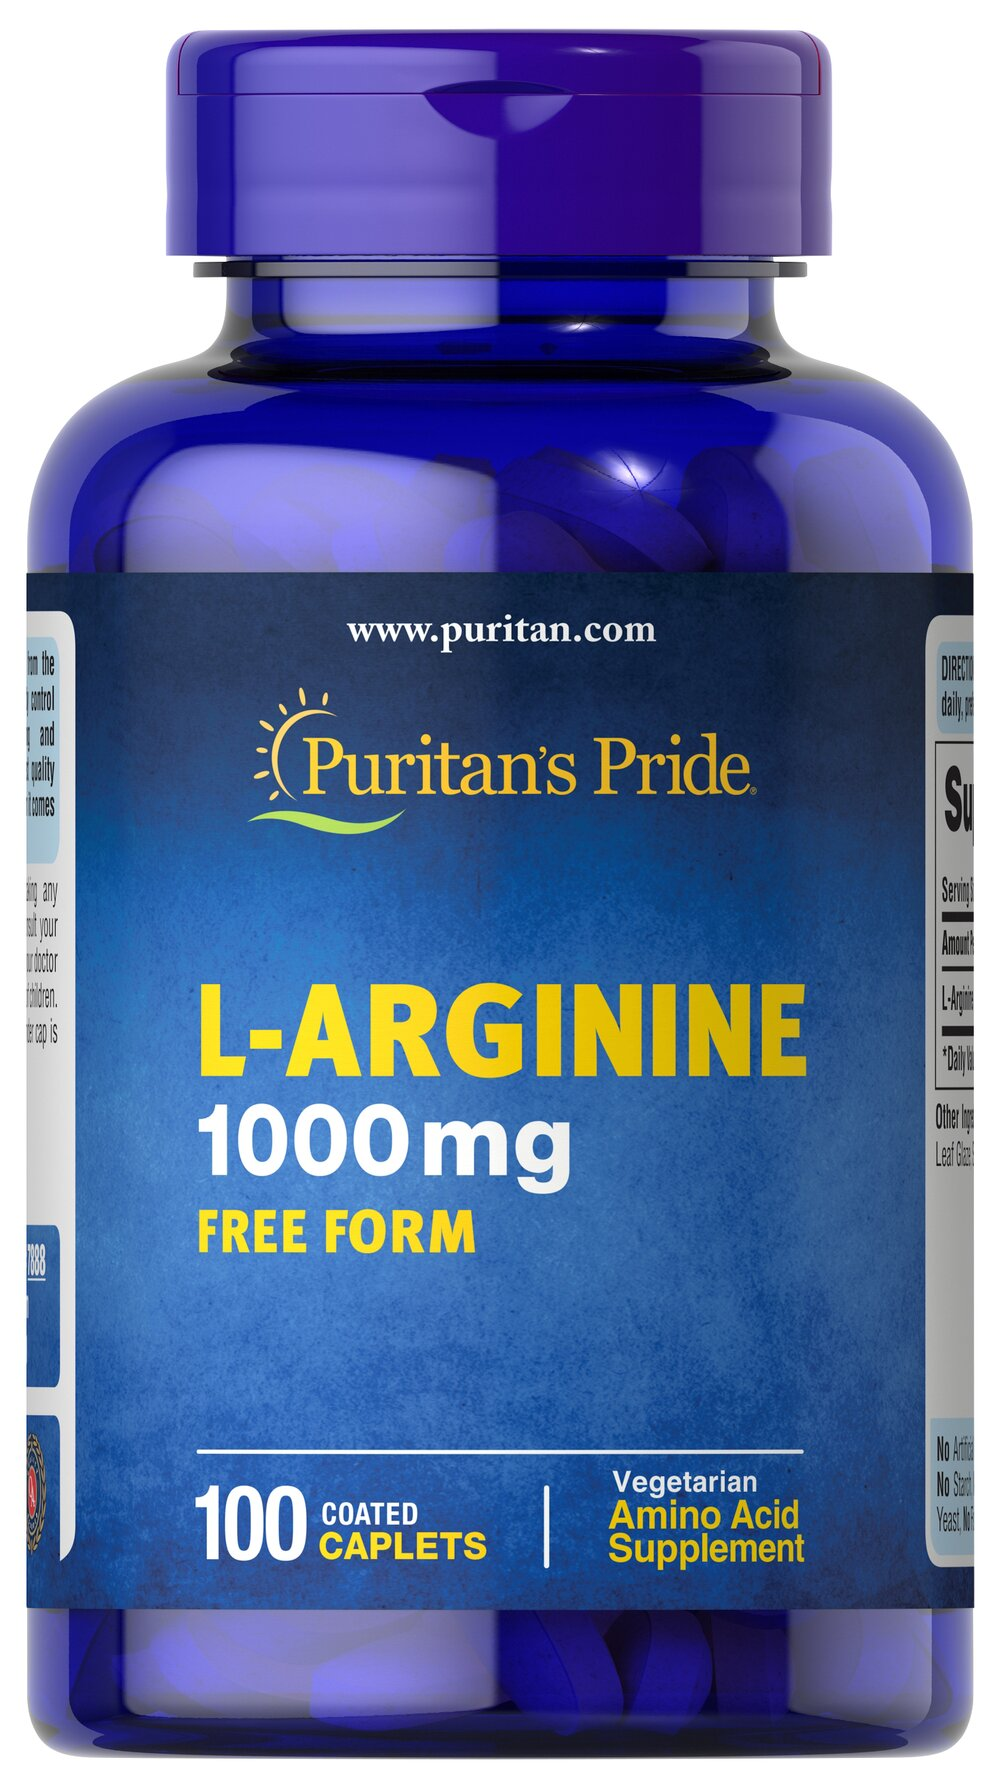 L-Arginine 1000 mg <p>Arginine is one of 20 amino acids, the building blocks of protein.** Arginine can  serve as a source of energy, and is involved in various pathways throughout the body.** Arginine supports the effect of exercise and is one of the most important amino acids involved in immune function.** Adults can take one caplet daily. </p> 100 Caplets 1000 mg